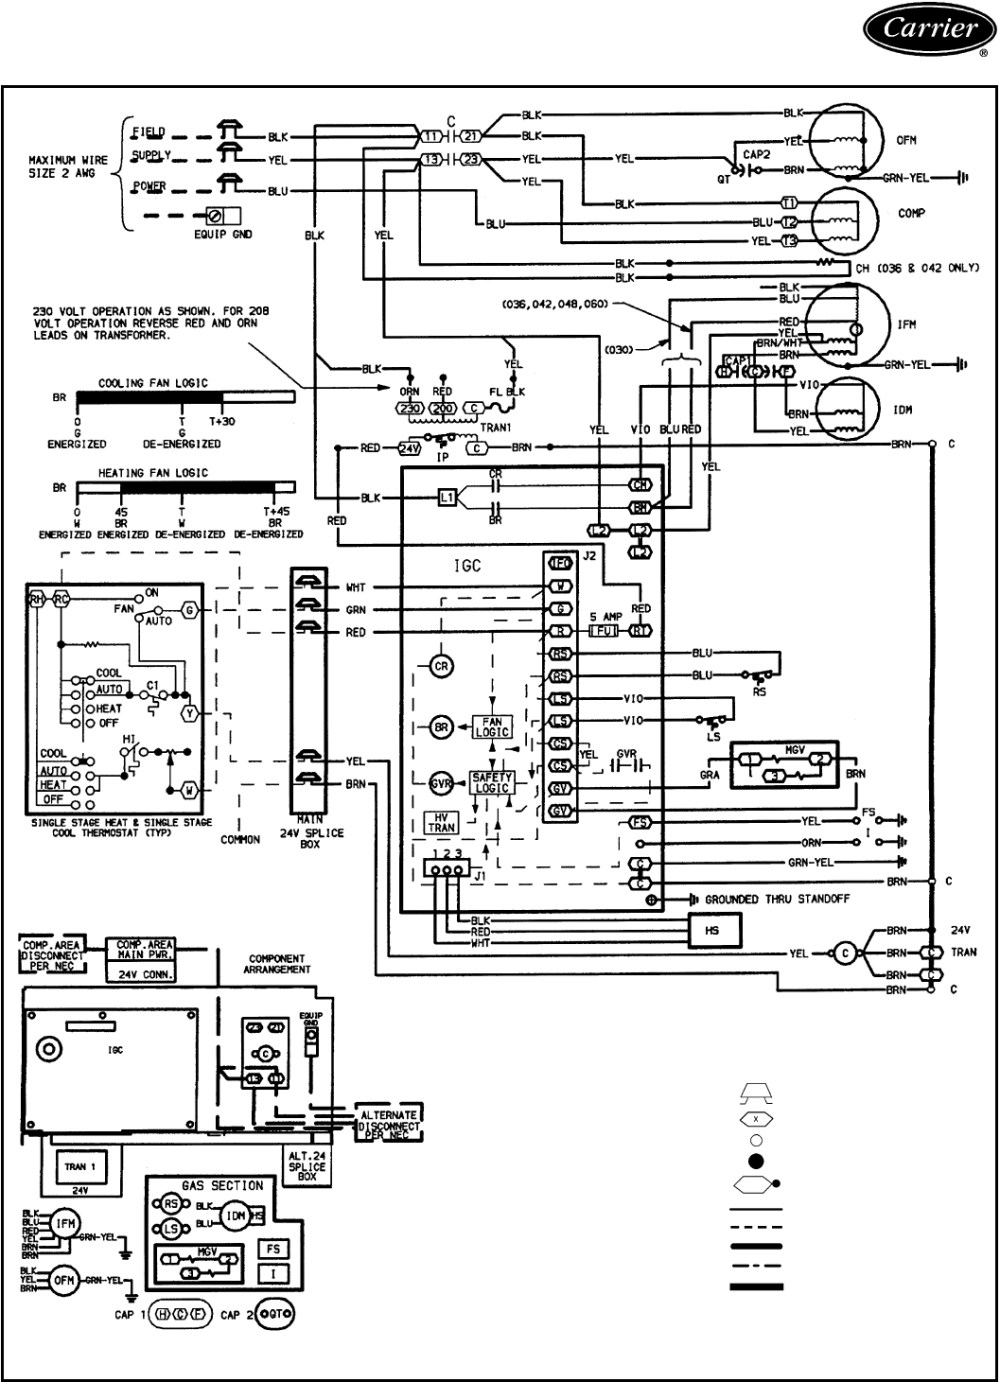 medium resolution of carrier ac wiring diagram carrier furnace wiring diagram collection rooftop unit wiring wiring diagram carrier